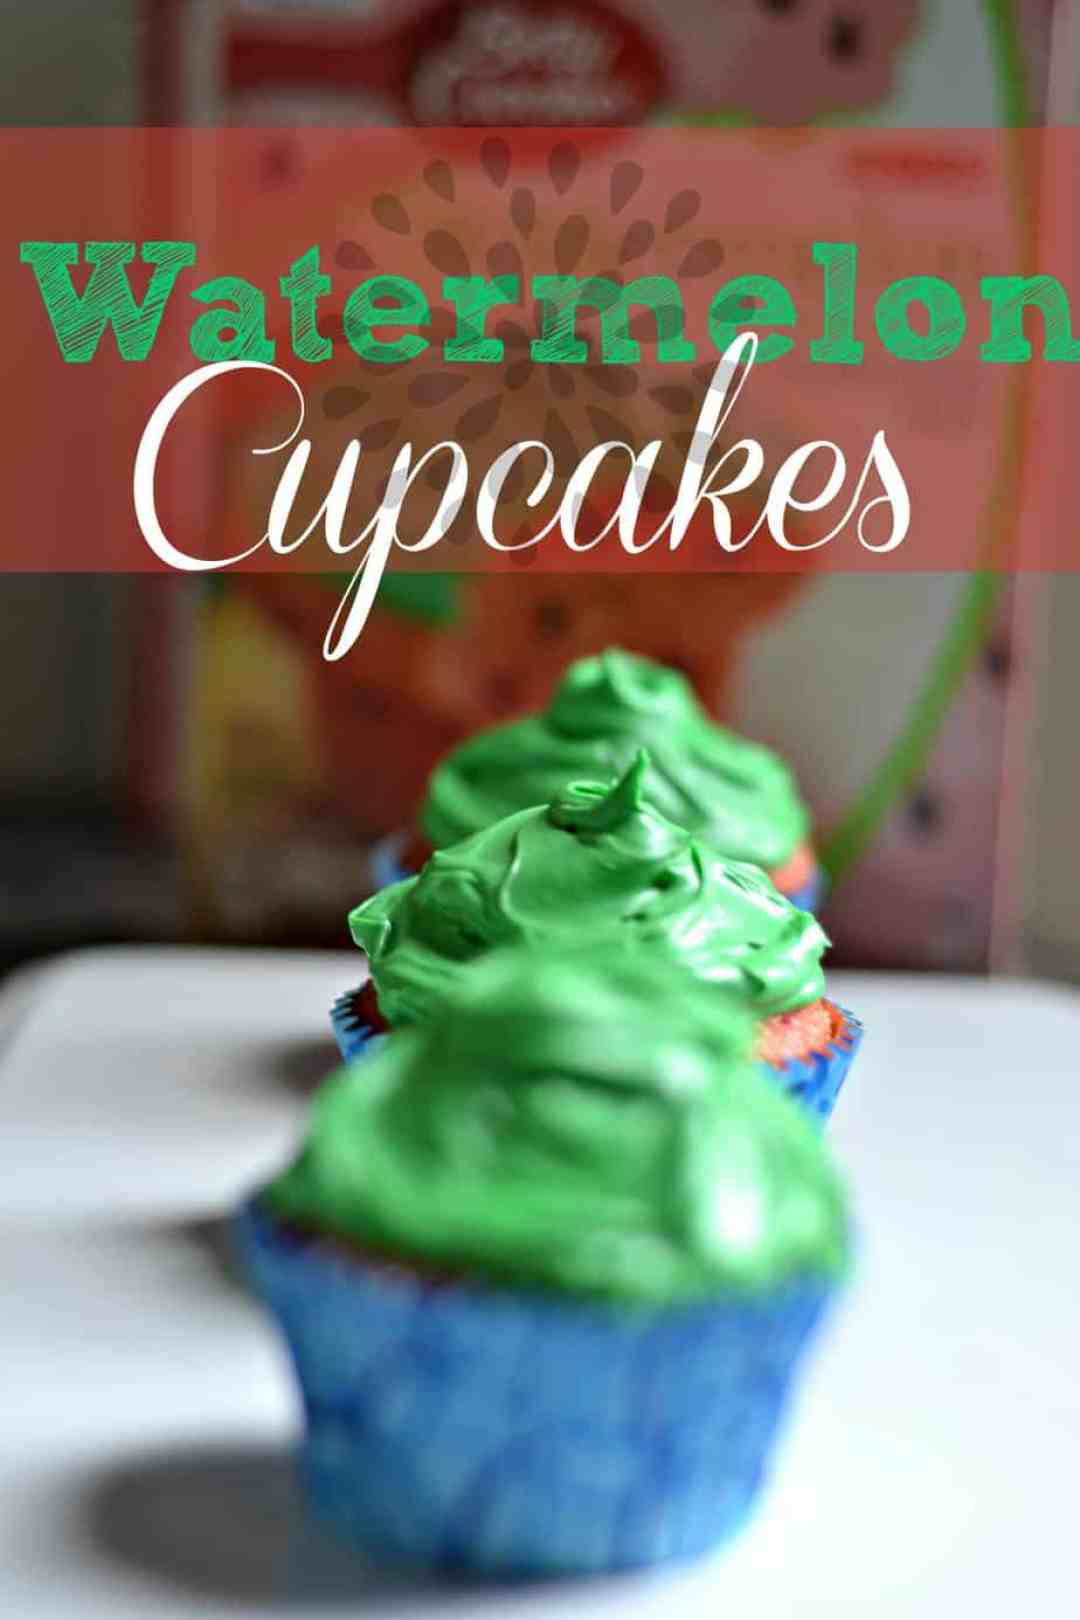 Betty Crocker Watermelon Cake Mix